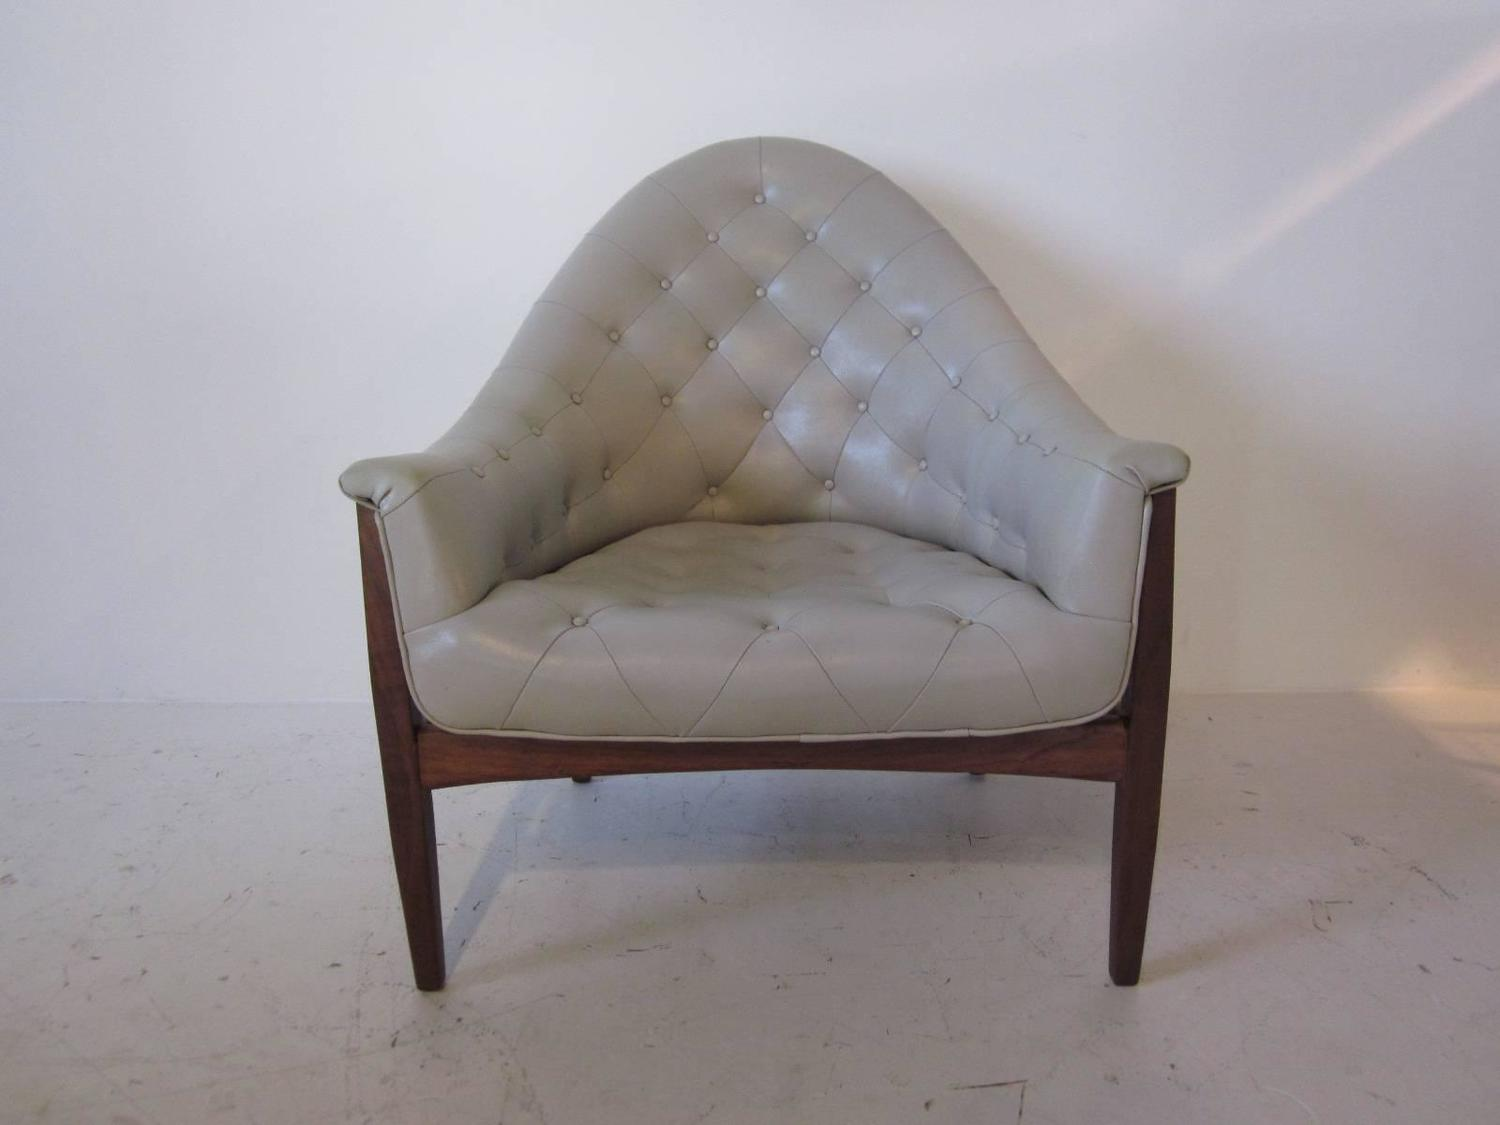 Milo Baughman Tufted Lounge Chair For Sale at 1stdibs